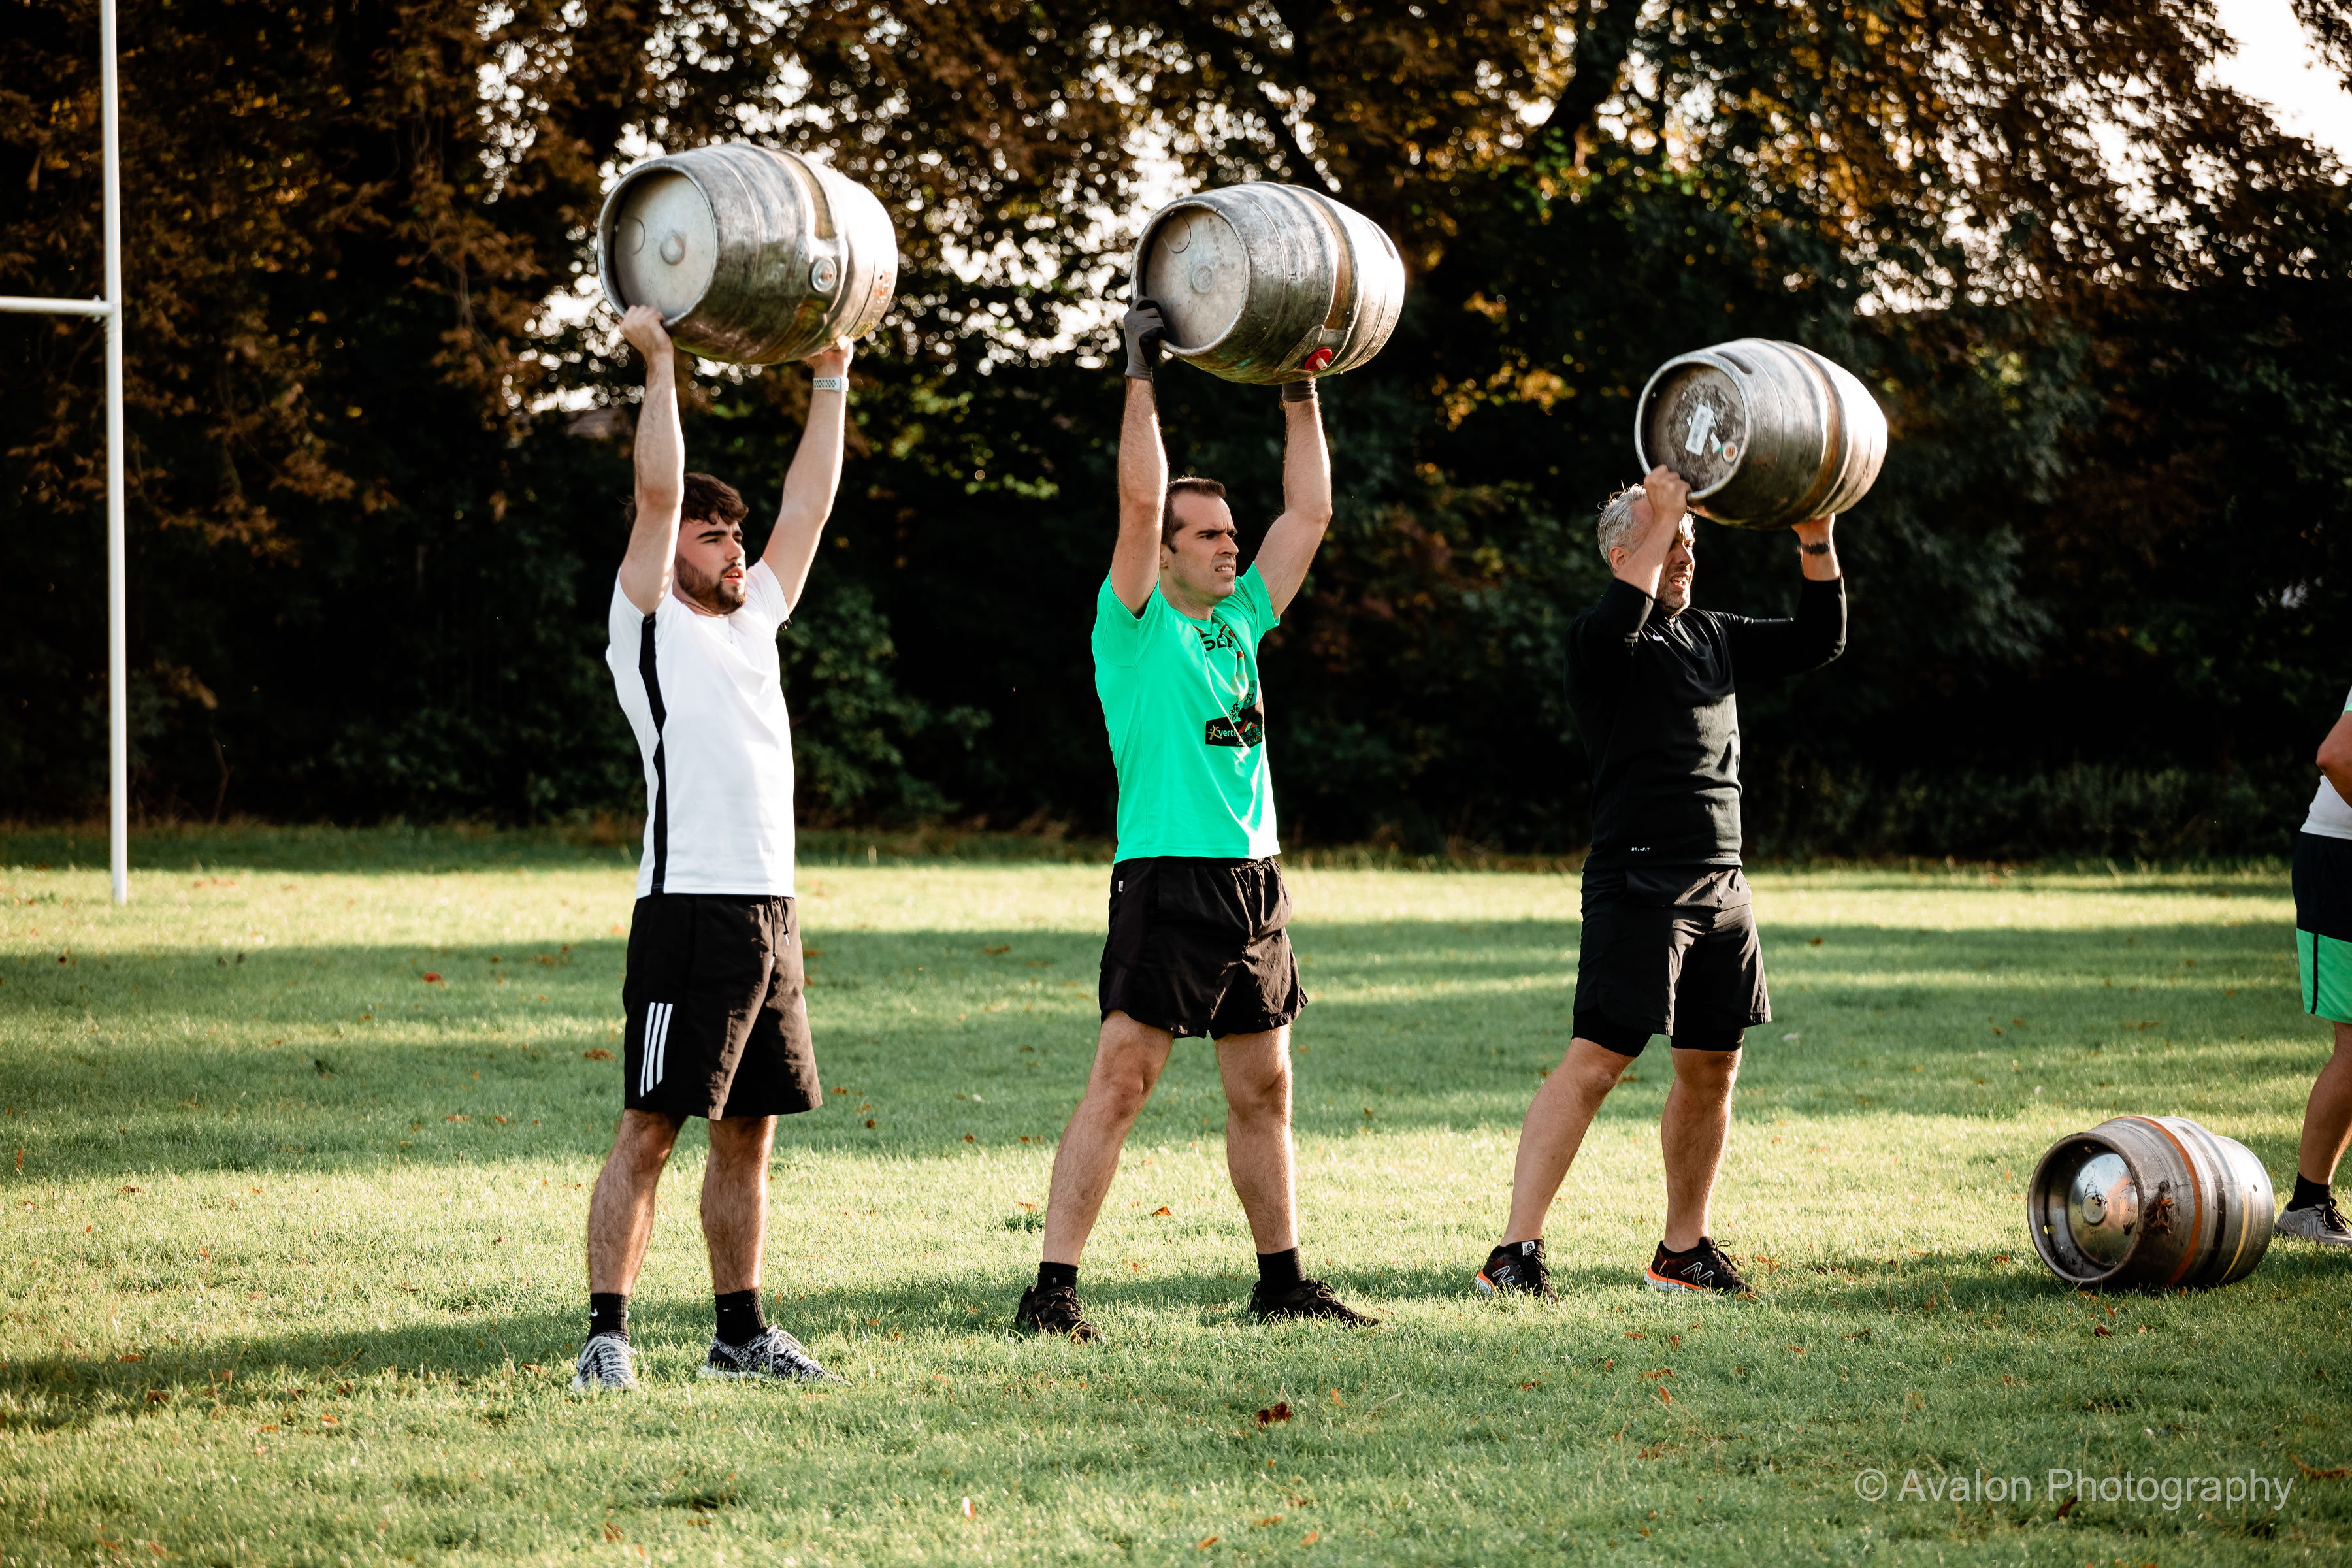 People training with barrel